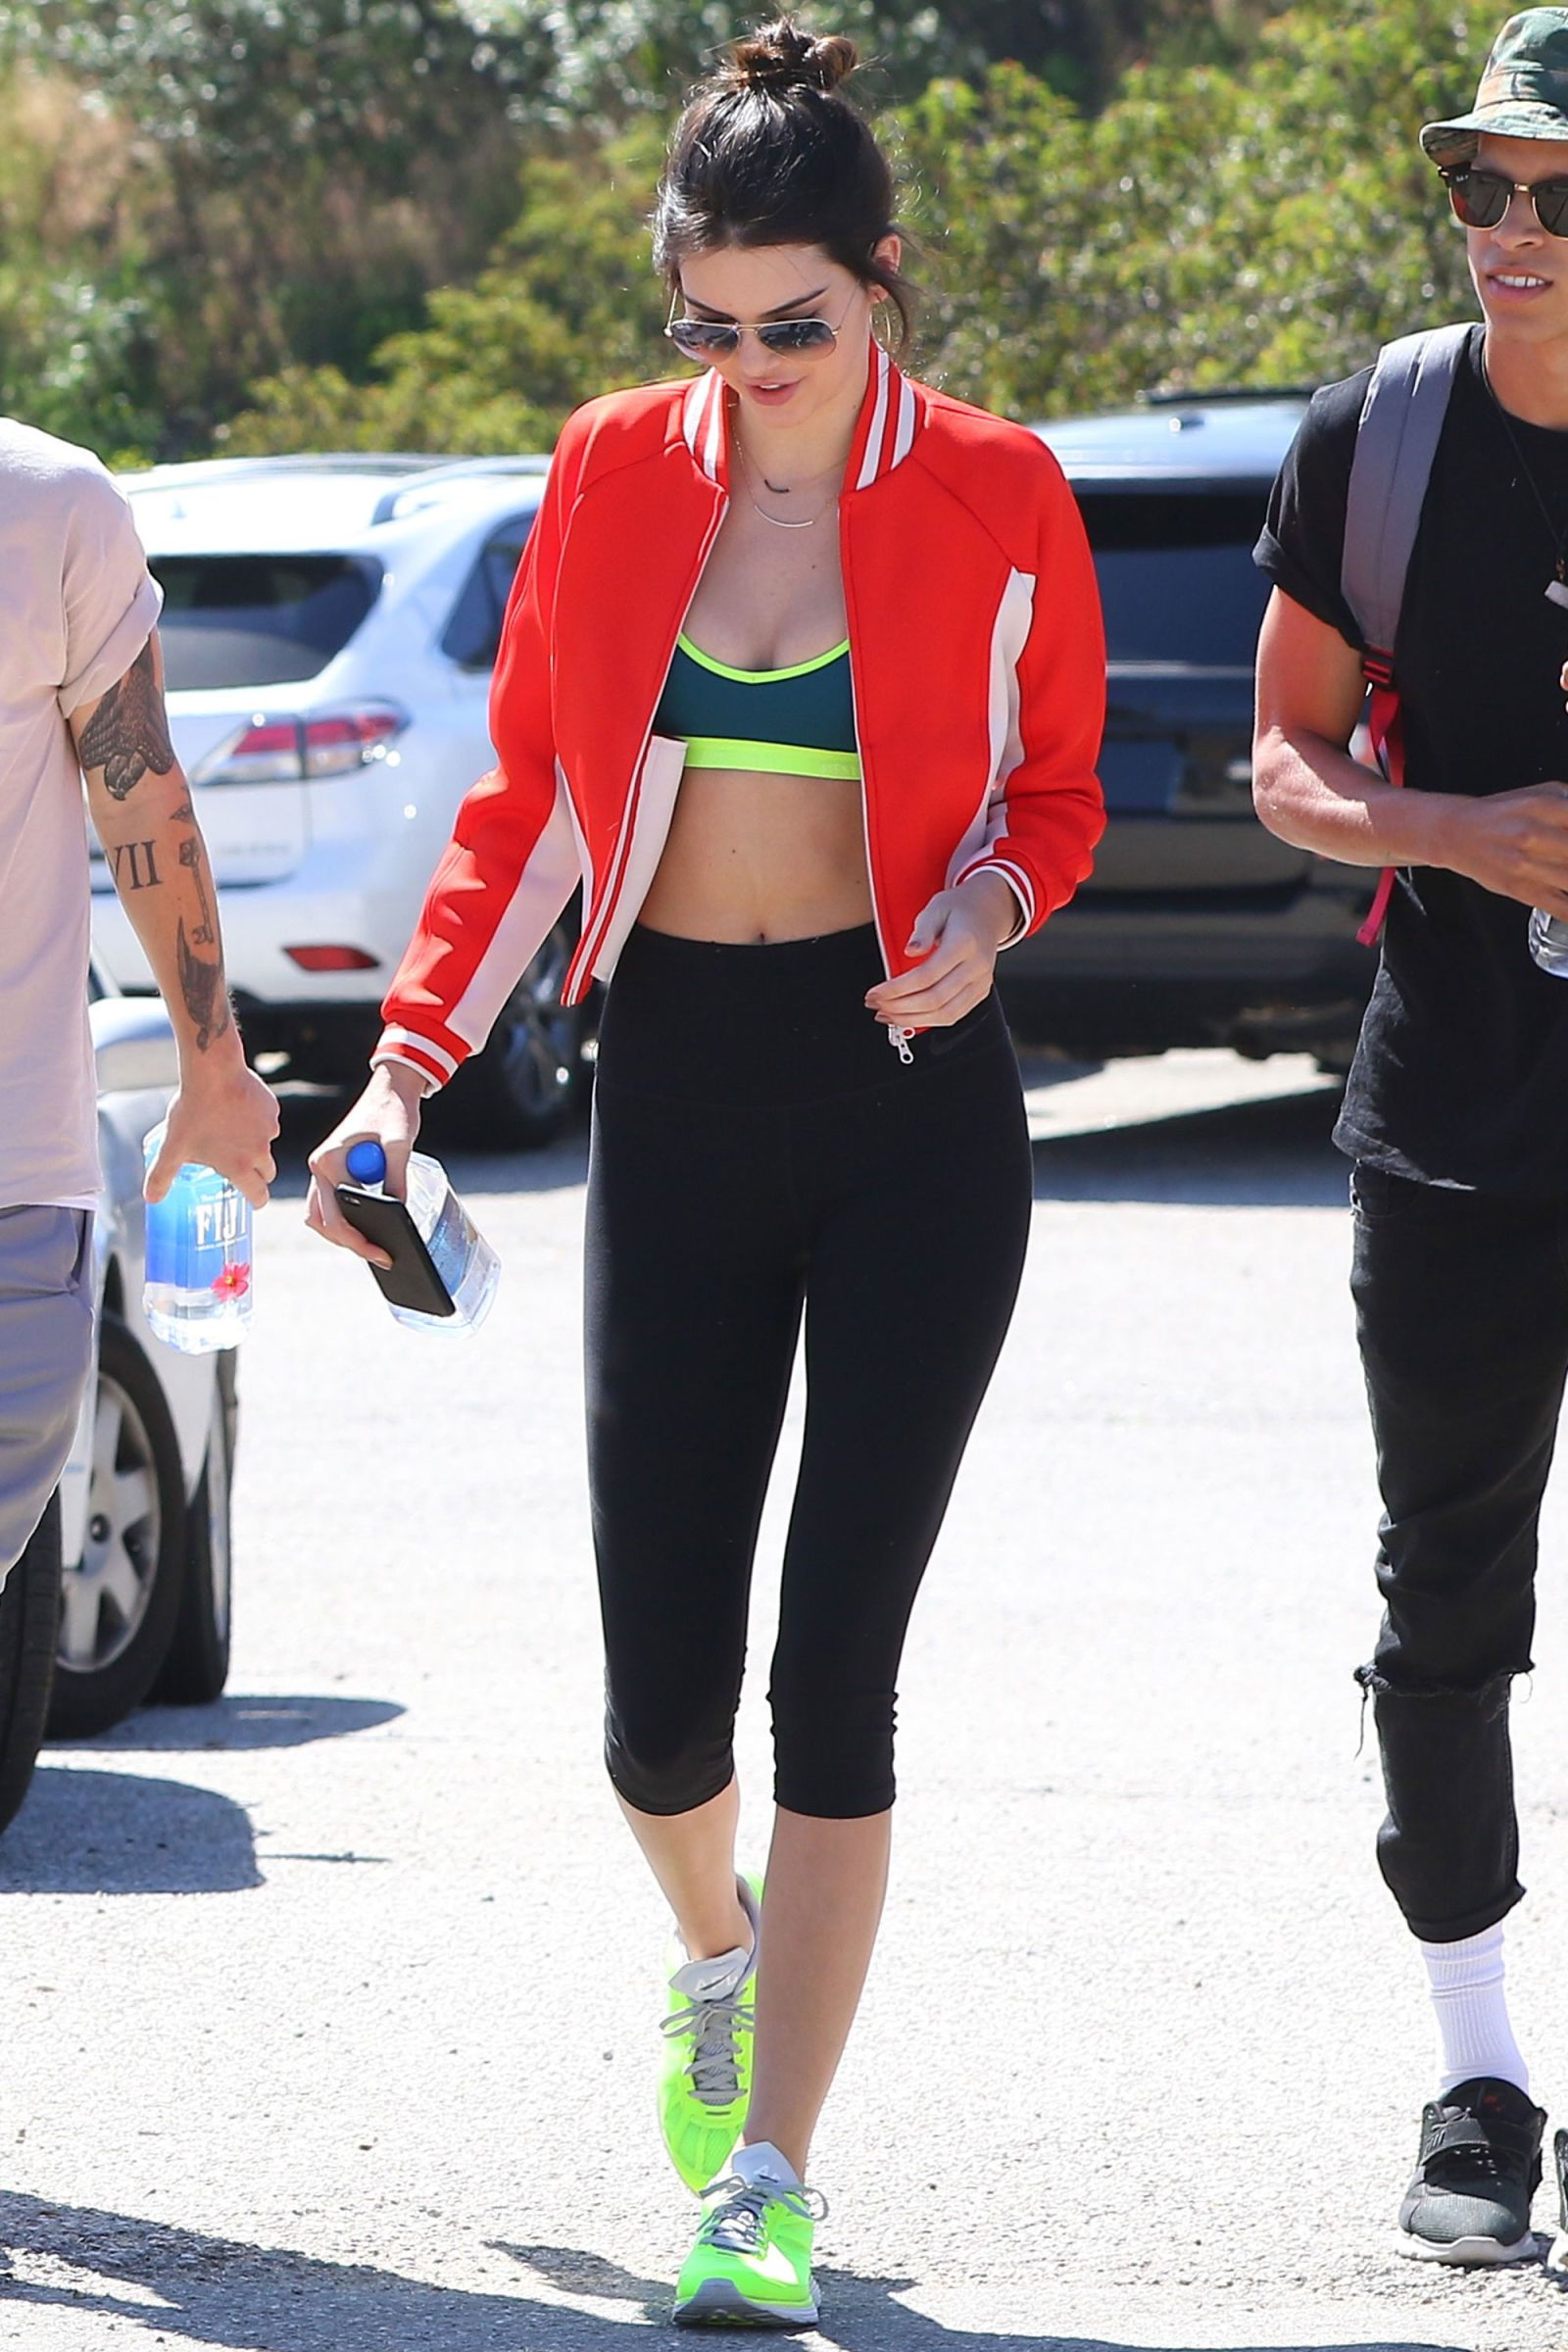 f818a91b5e57d8 15 Times Kendall Jenner and Gigi Hadid Looked Flawless in Gym Clothes -  Cosmopolitan.com